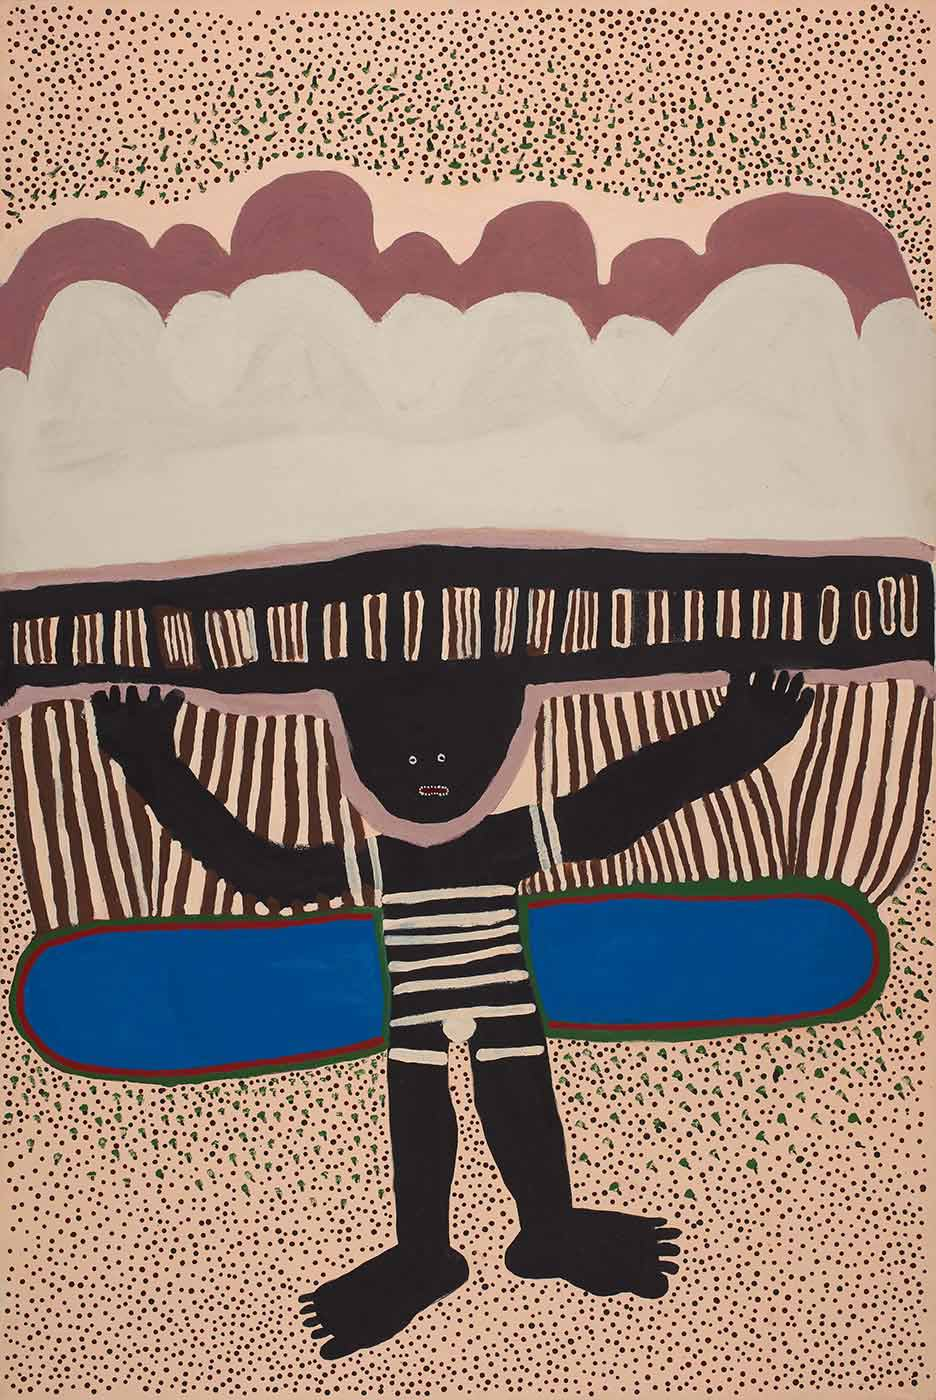 An acrylic on canvas stretched painting depicting a black human like figure with arms in the air and balancing something on it's head. A blue oval is painted behind the figure and the background is cream with green, black and brown dots. - click to view larger image